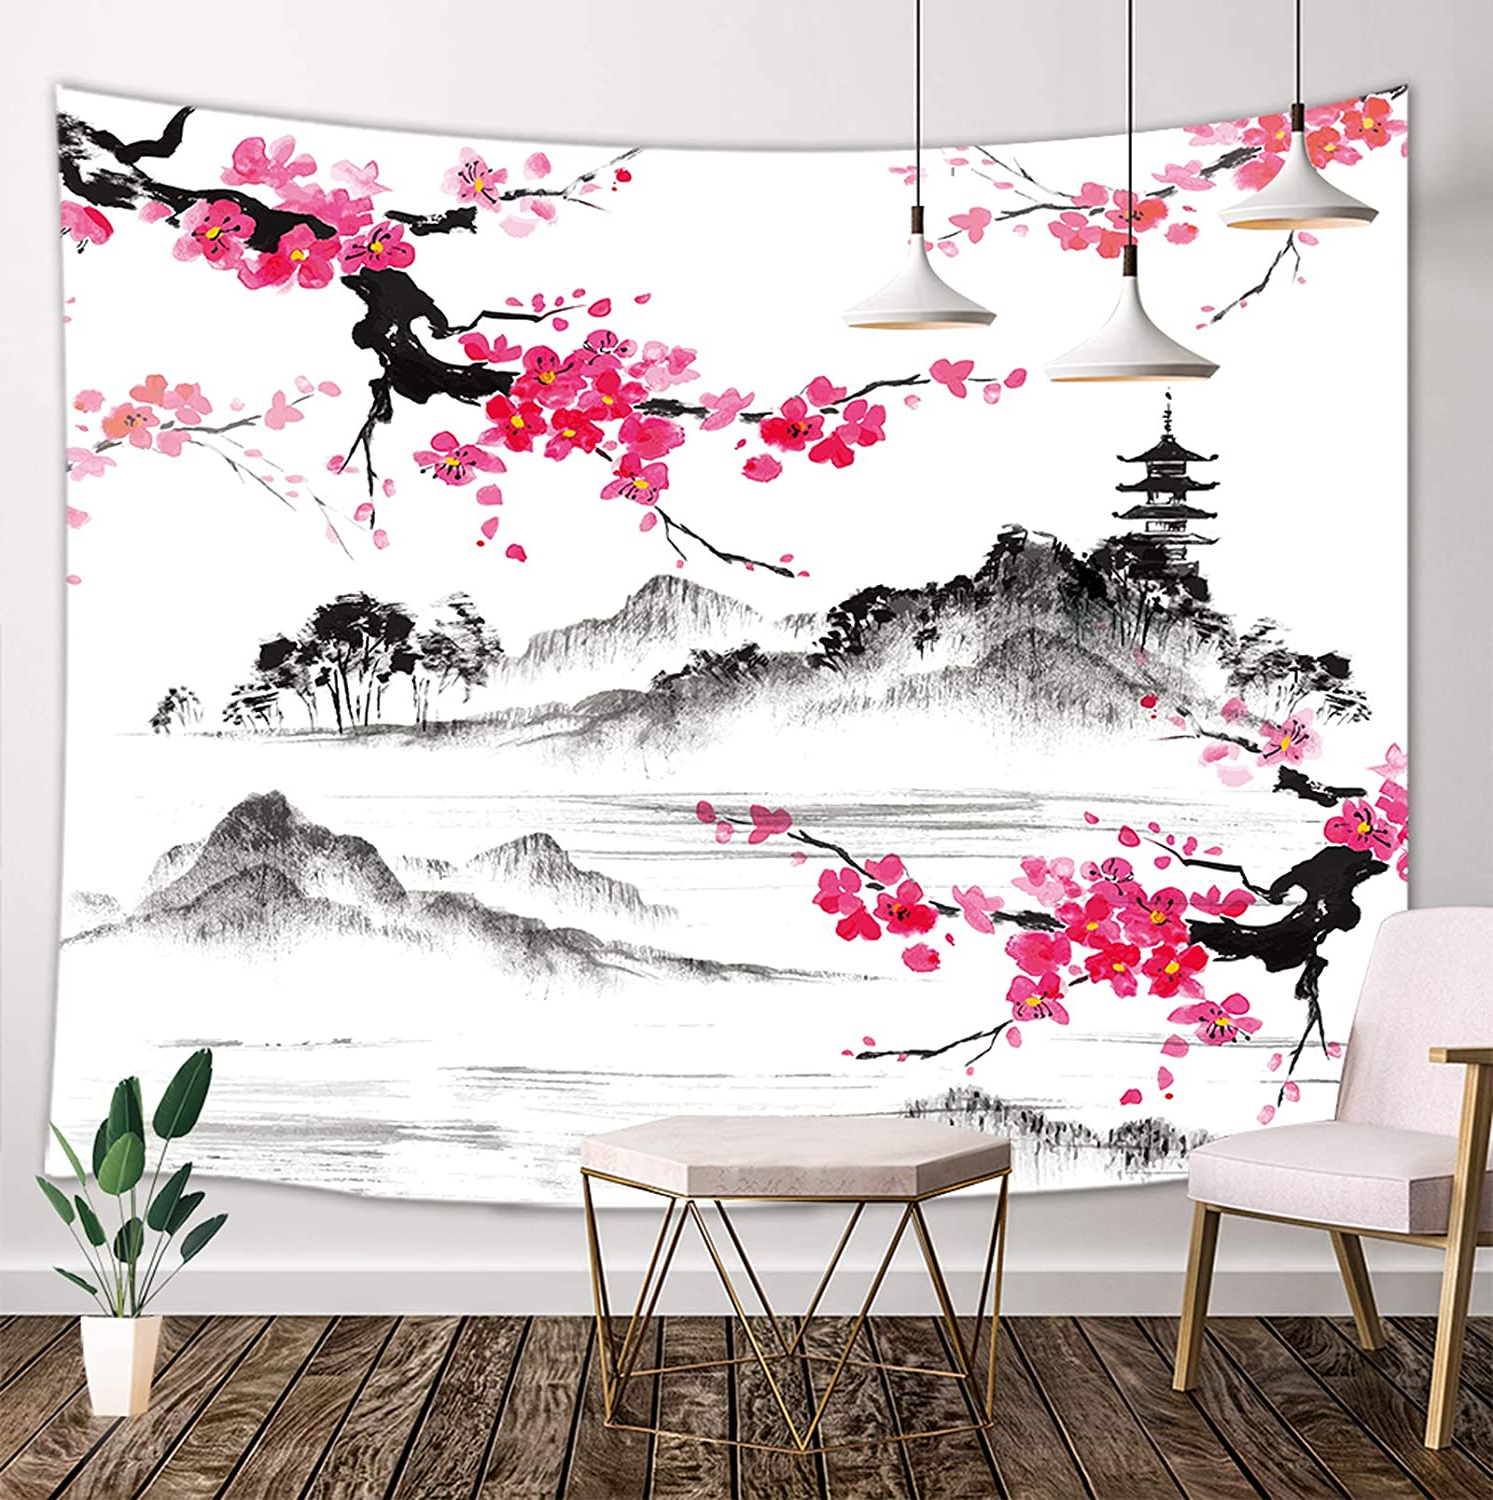 Blended Fabric Spring Party Wall Hangings With Well Liked Japanese Tapestry, Asian Anime Mount Fuji With Cherry Blossoms Sakura Flower Tapestry Wall Hanging For Living Room Bedroom Dorm Decor, Black And White (View 9 of 20)